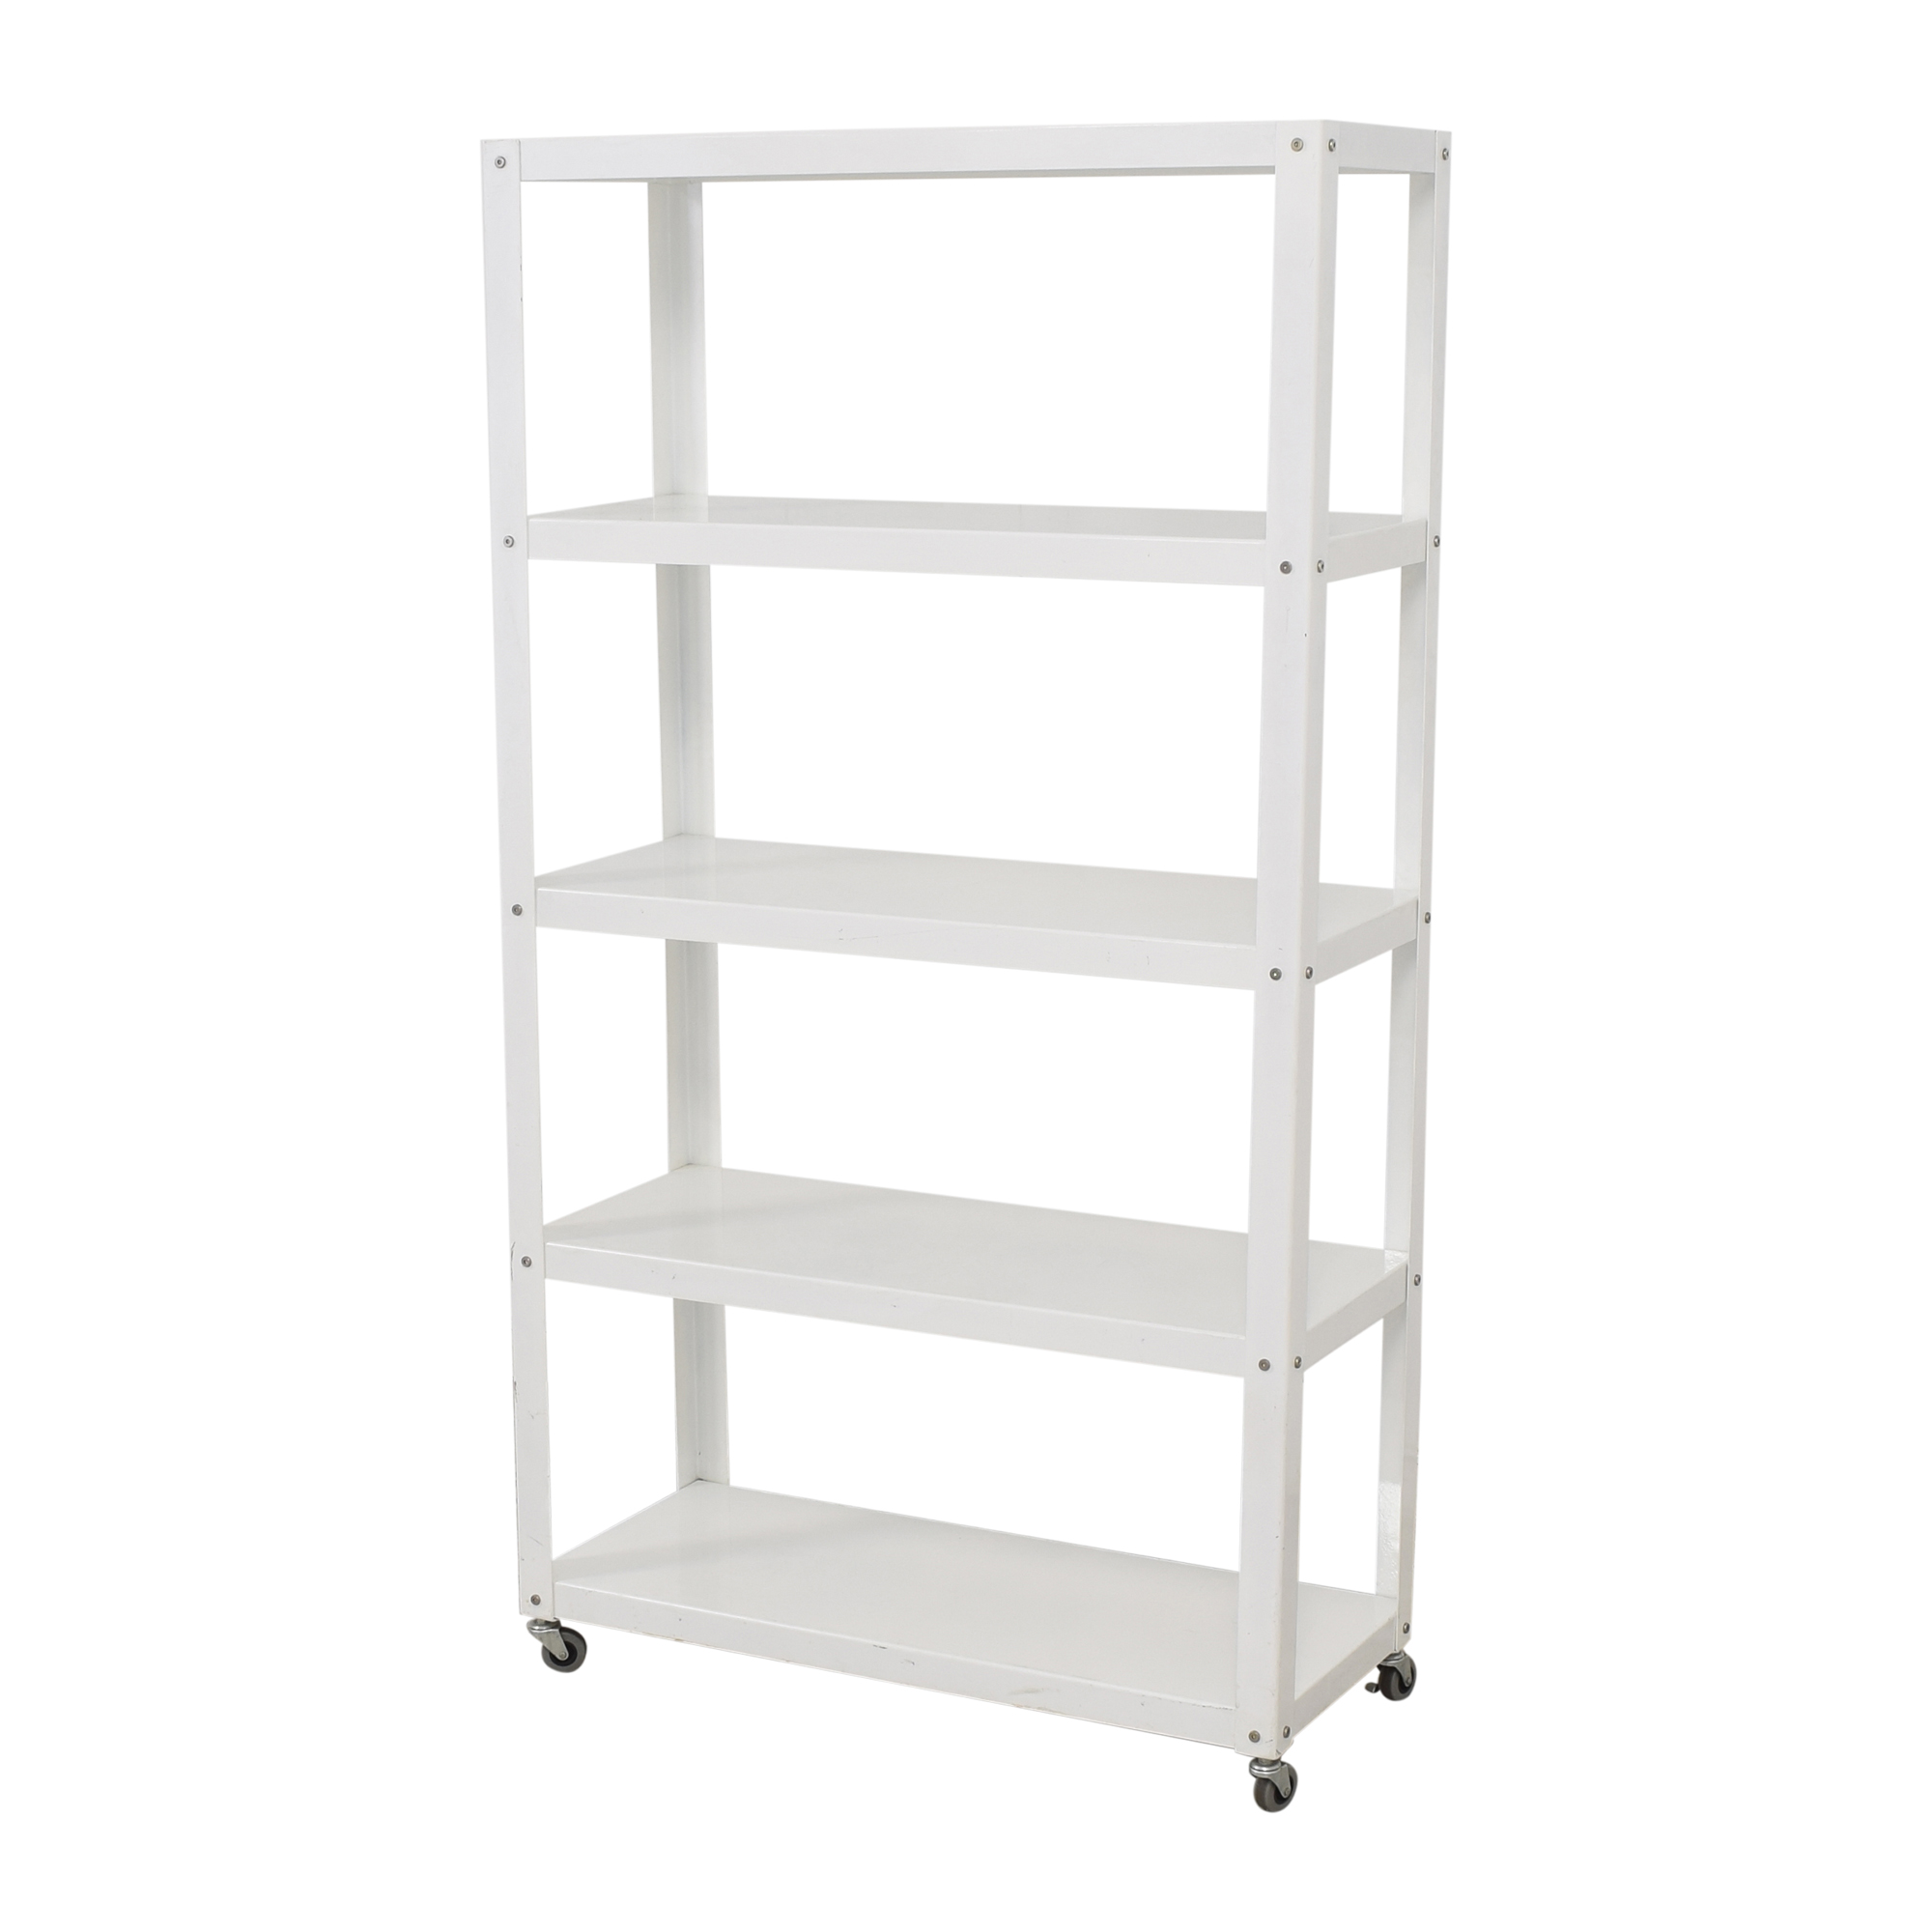 CB2 CB2 Go-Cart Rolling Bookcase used